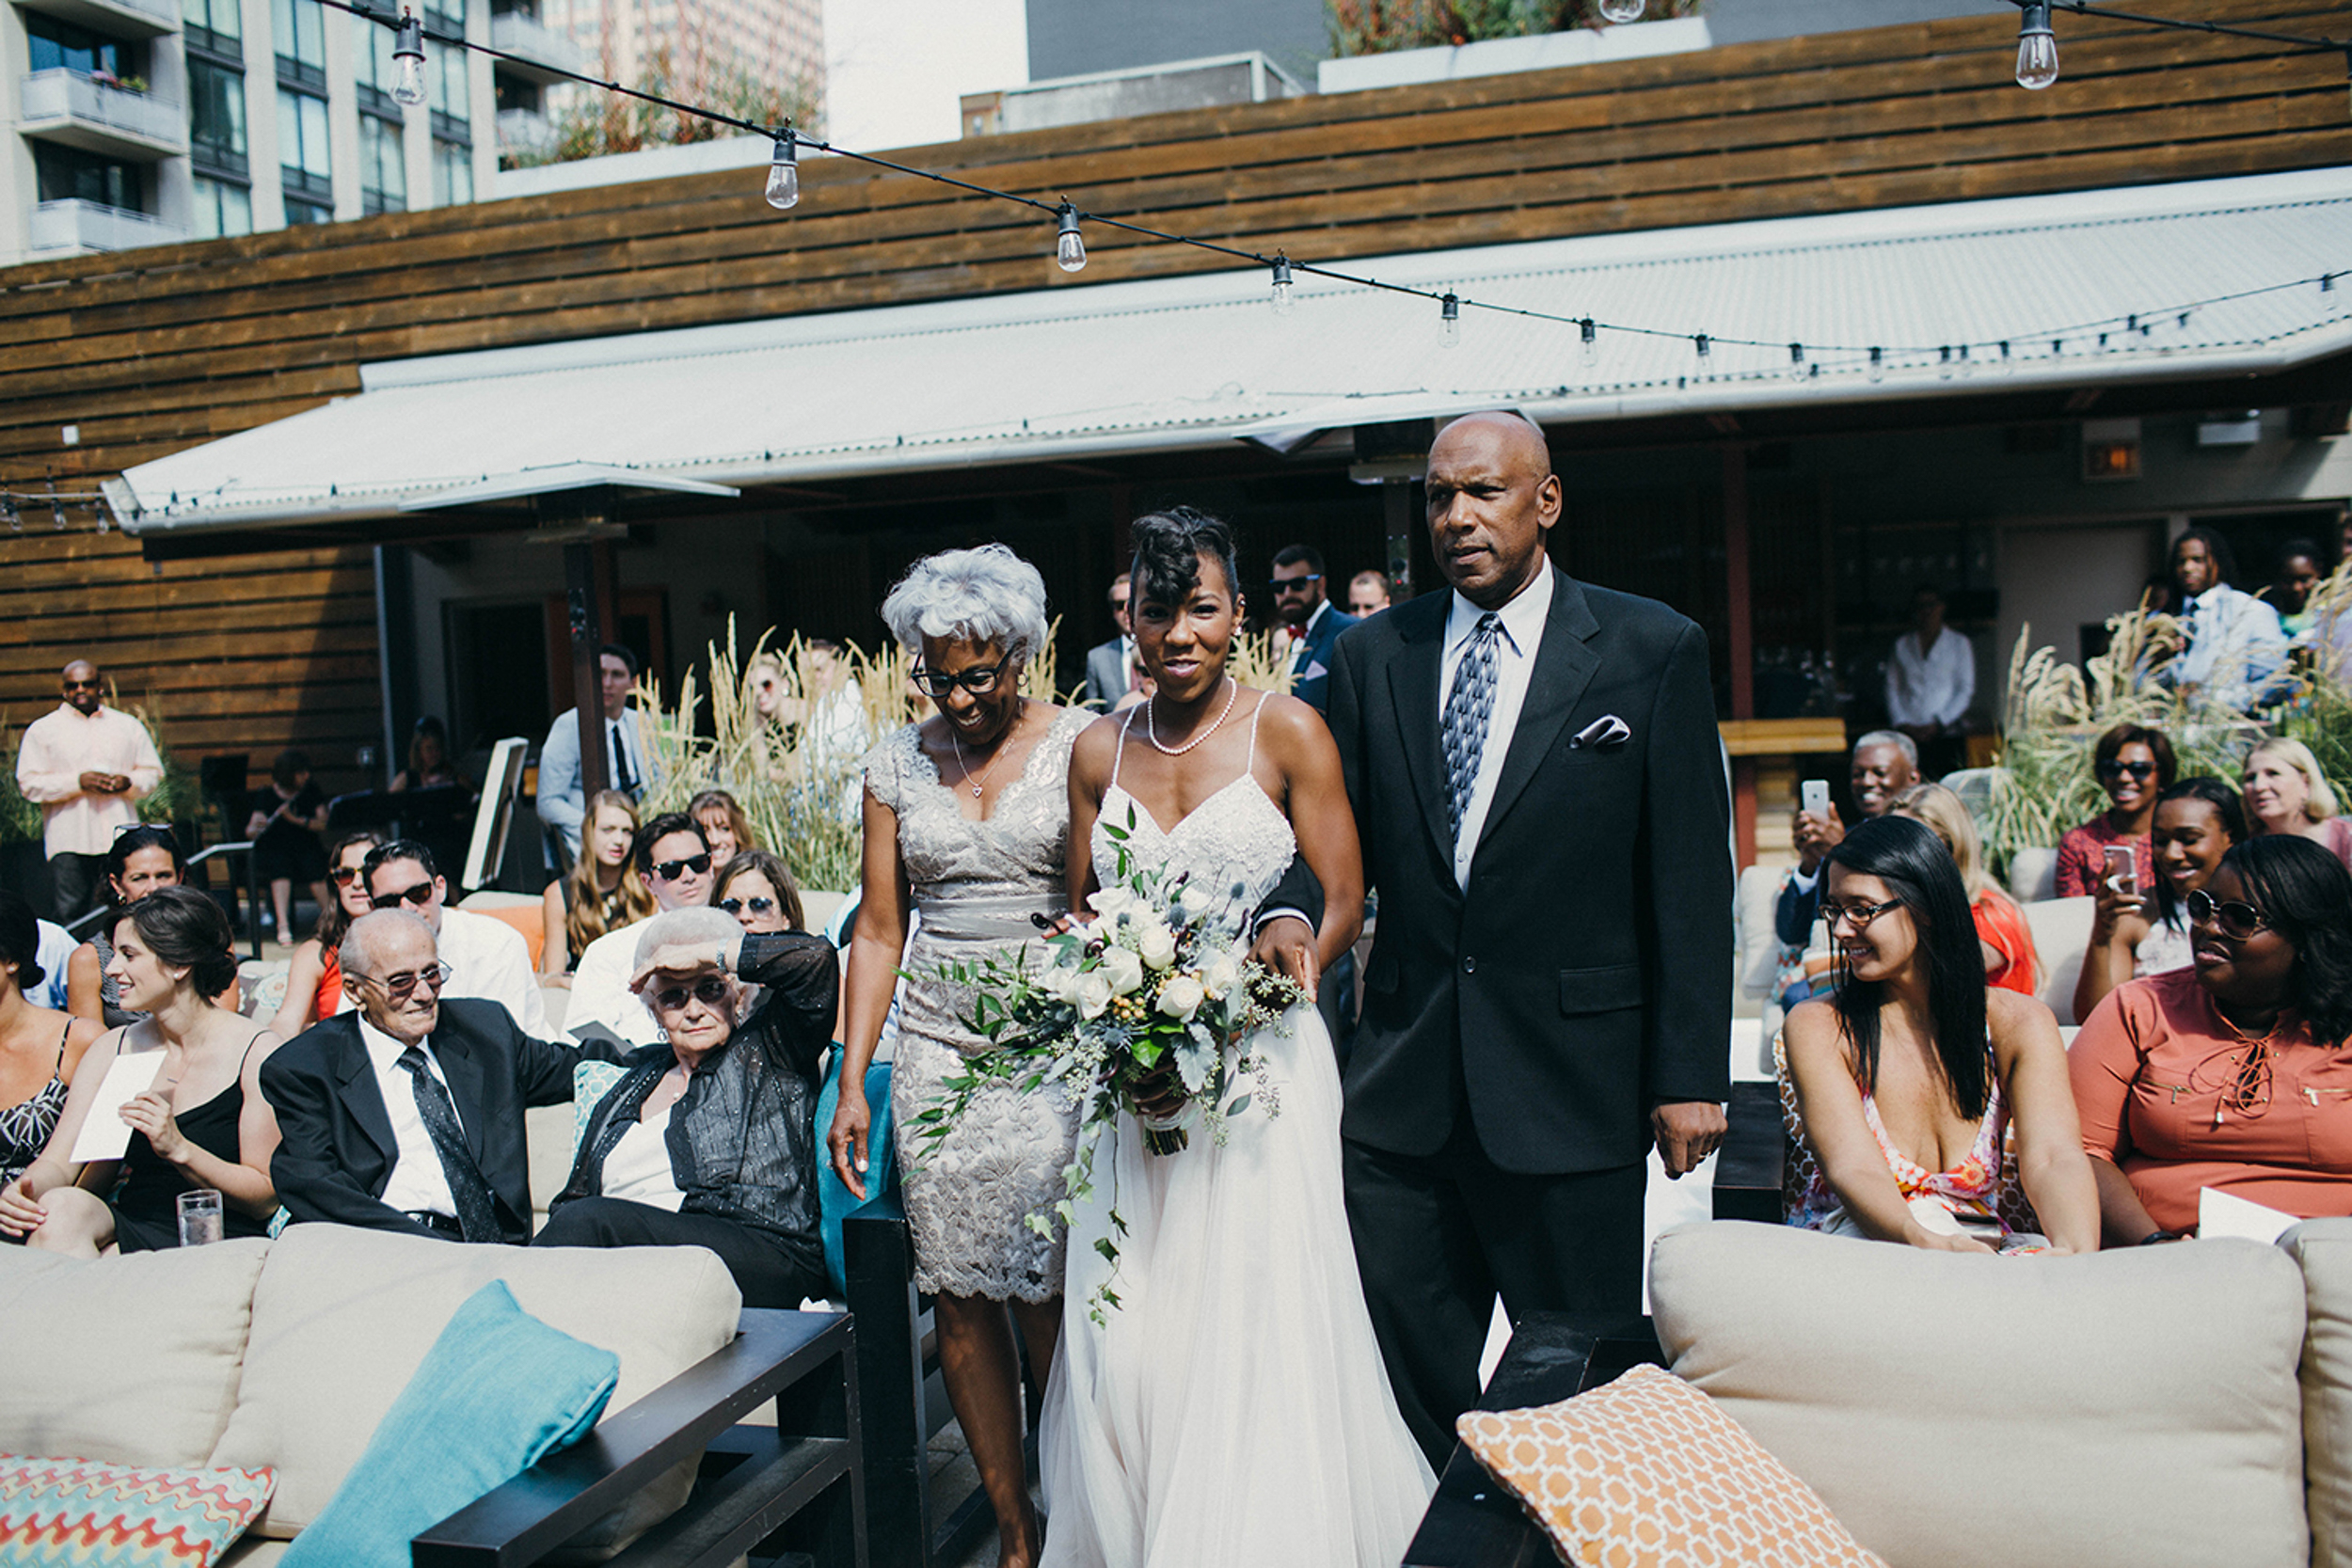 chicago.wedding.urban.intimate.zed451.lake.milton olive park-45.jpg